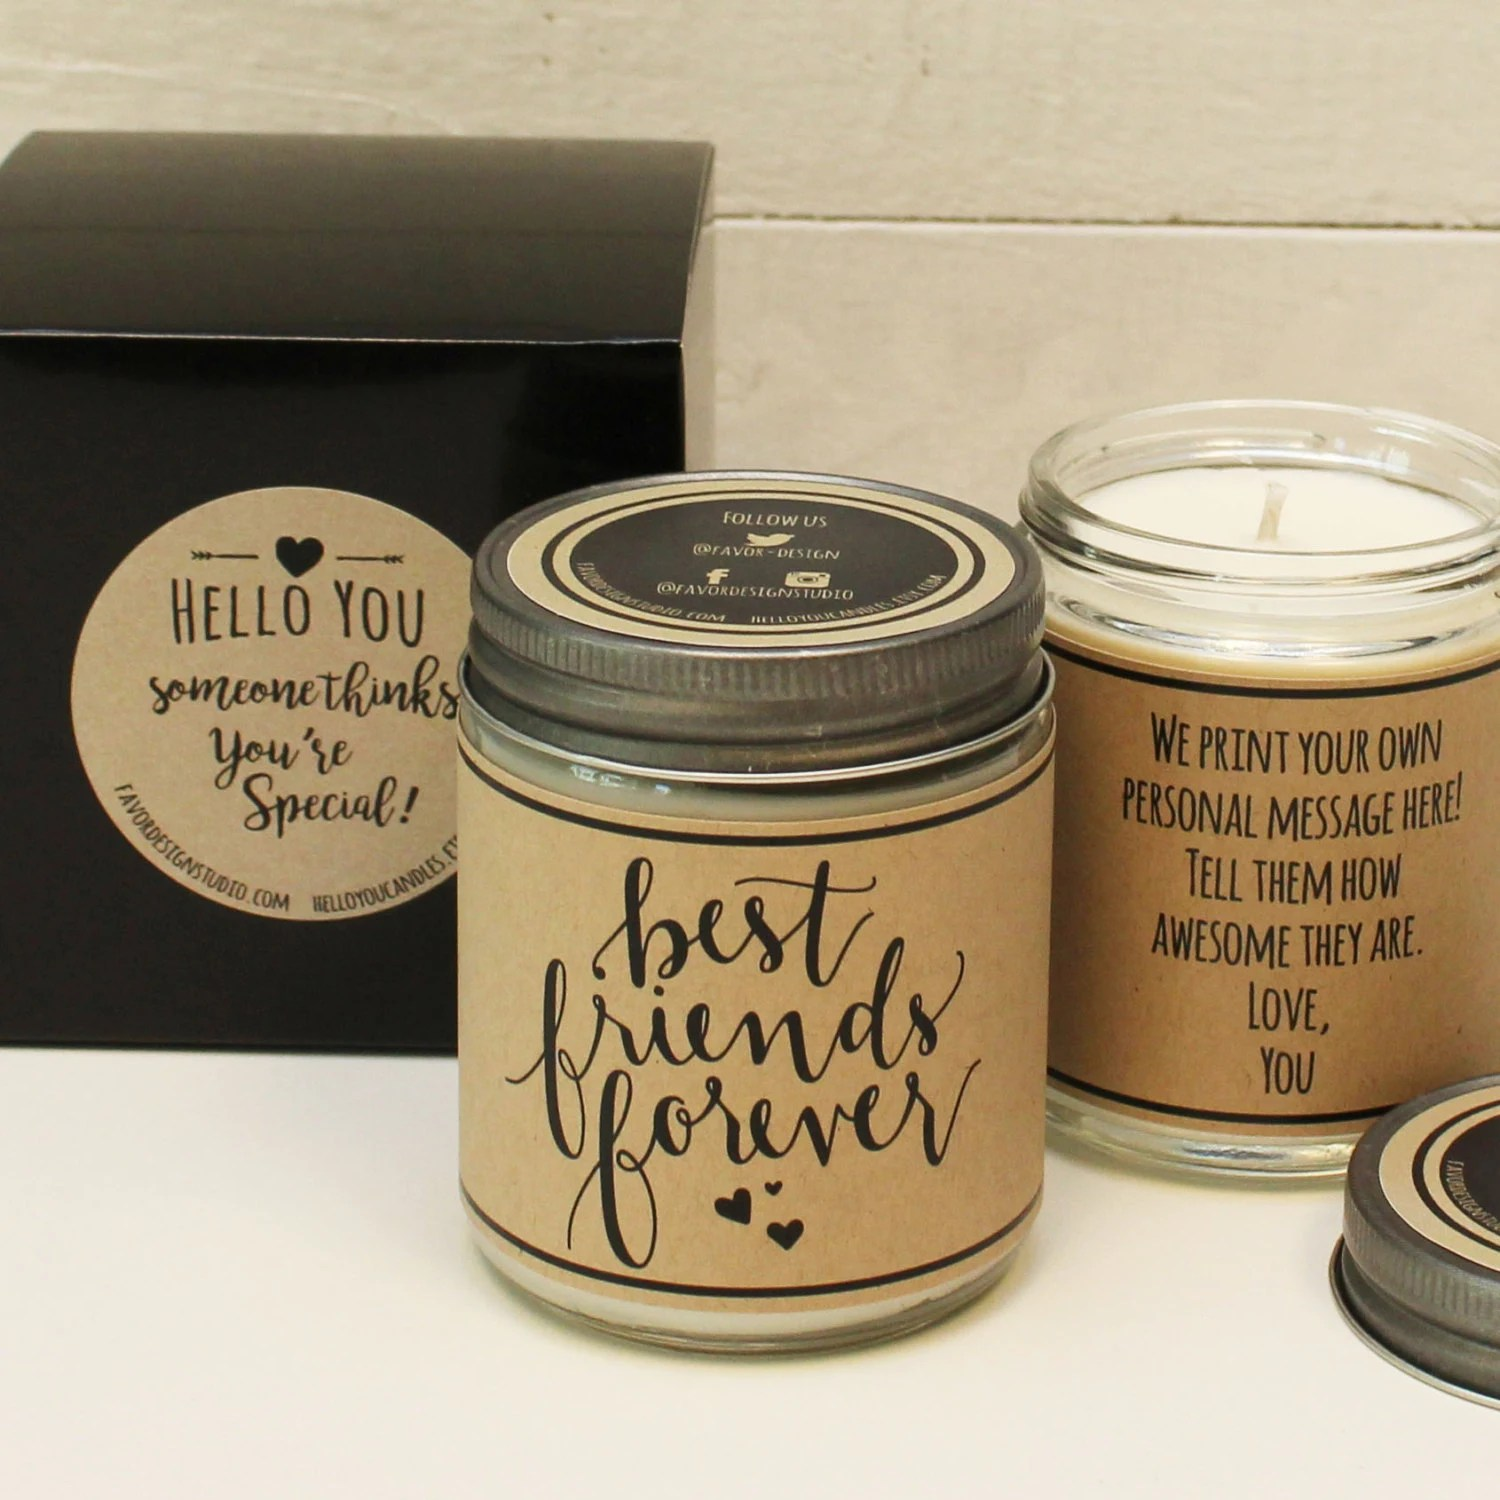 Best Scented Candles Best Friends Forever Scented Soy Candle Gift By